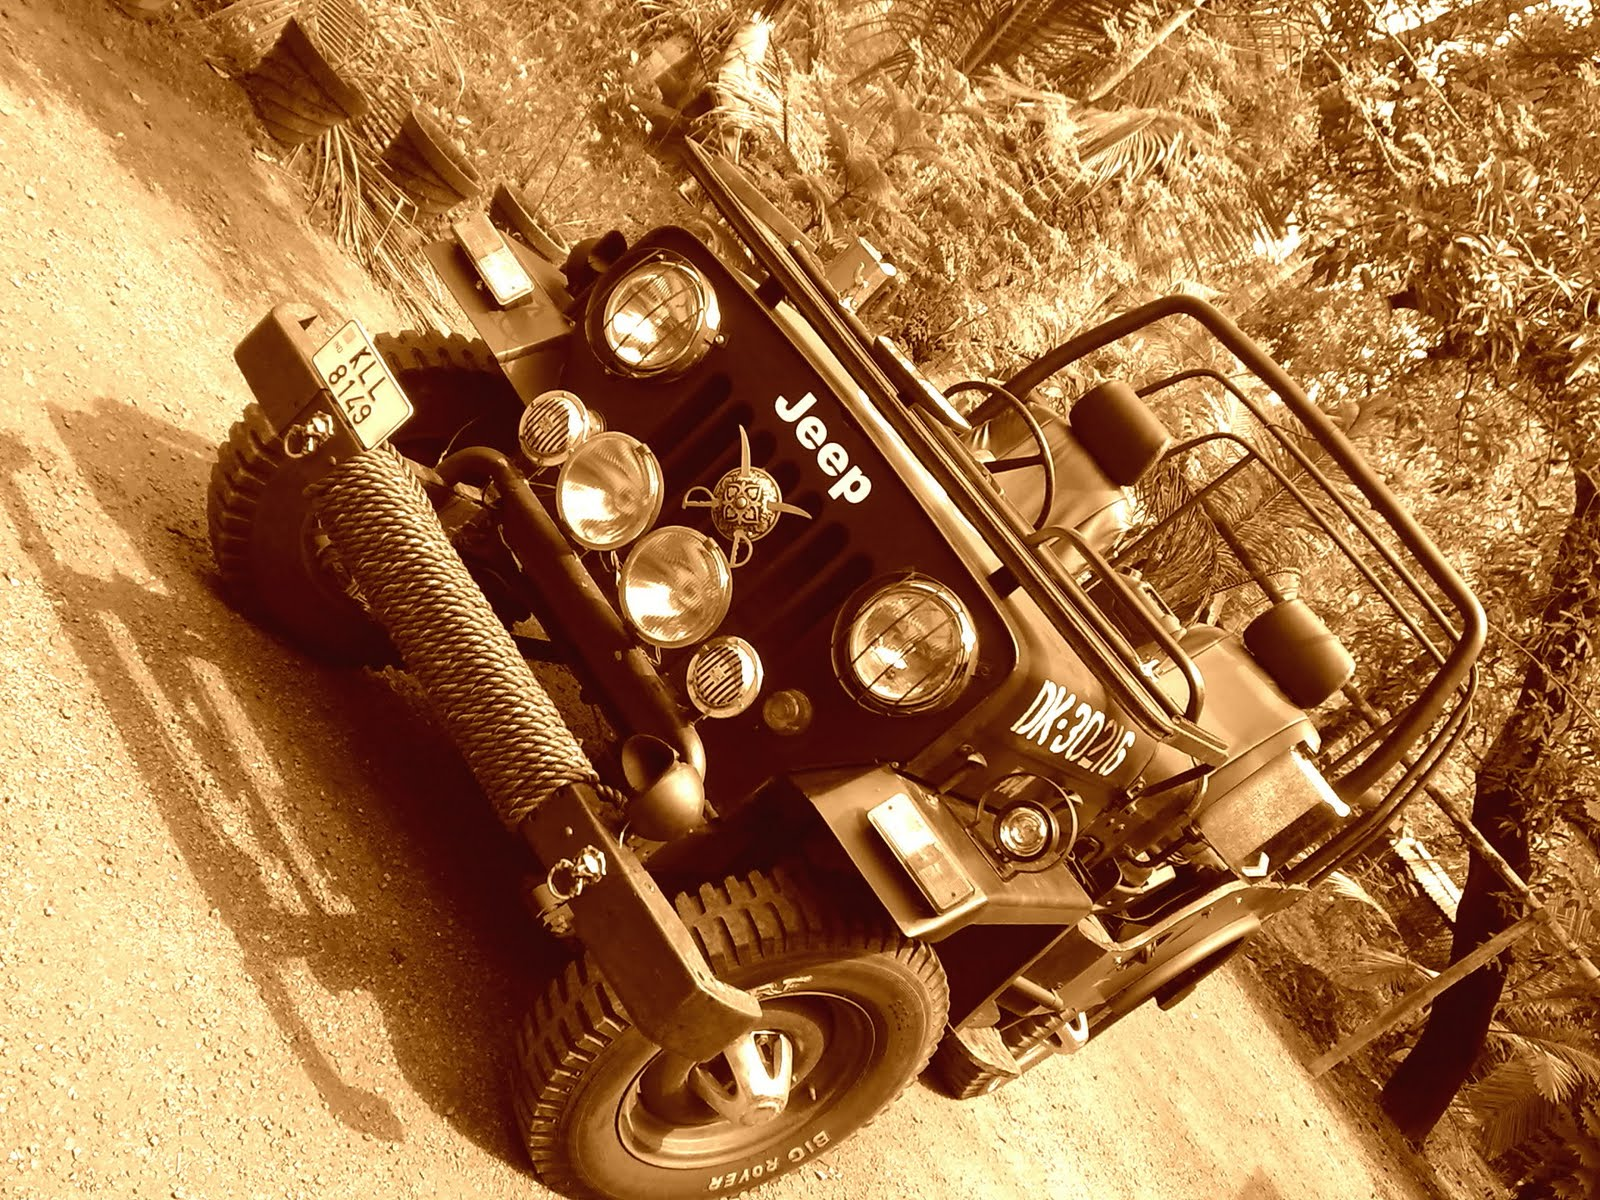 Mahindra Cj 500d My Modified Jeep Eagerly Waiting For